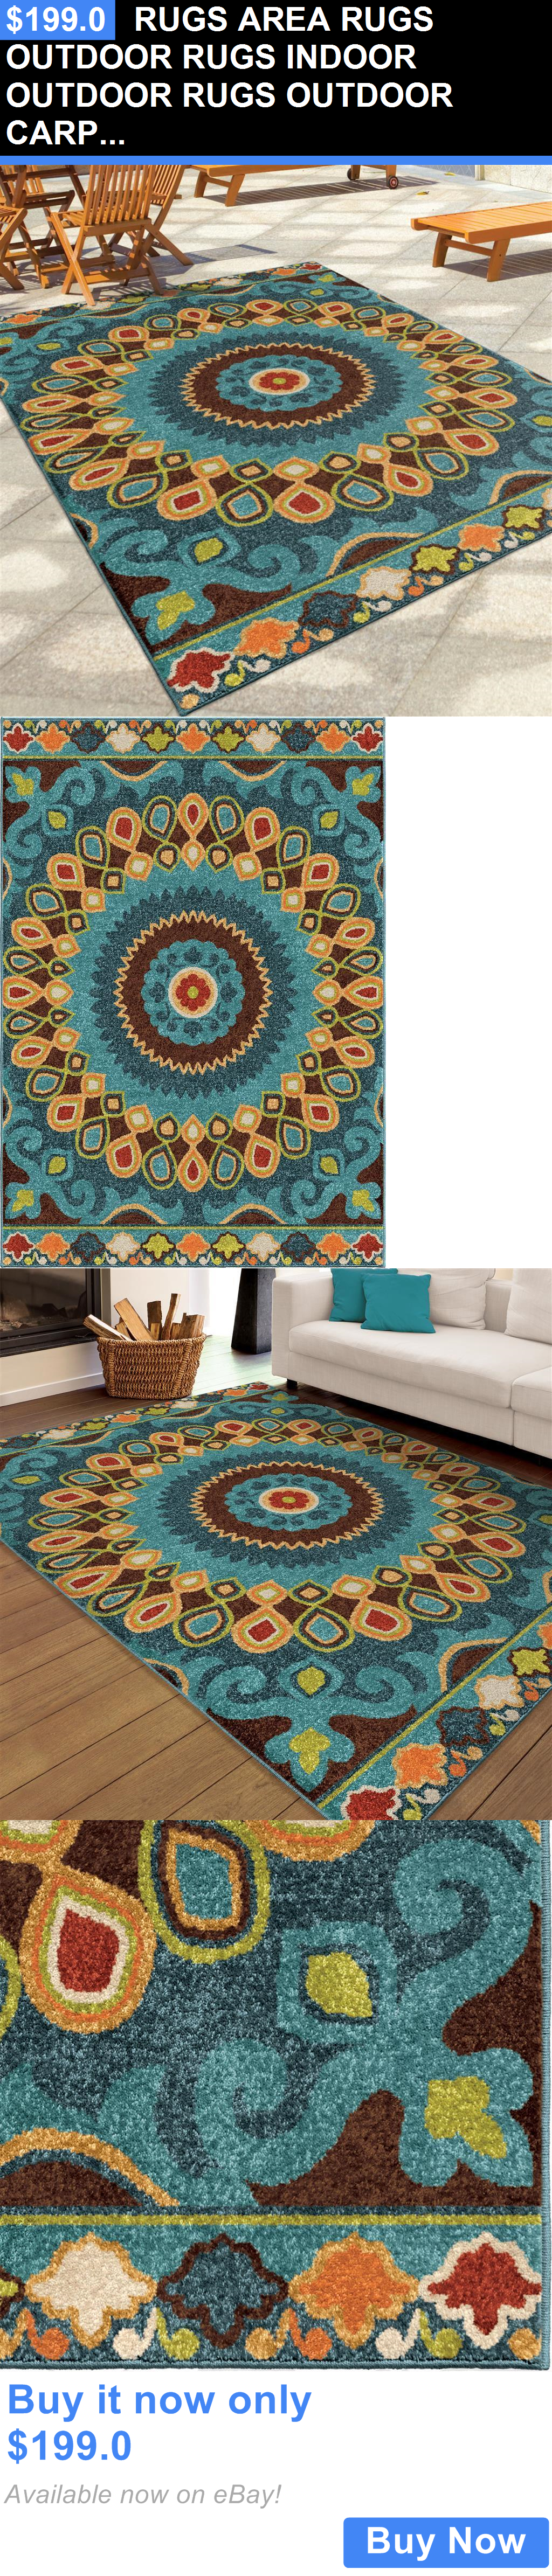 Household Items: Rugs Area Rugs Outdoor Rugs Indoor Outdoor Rugs Outdoor  Carpet Rug Sale ~